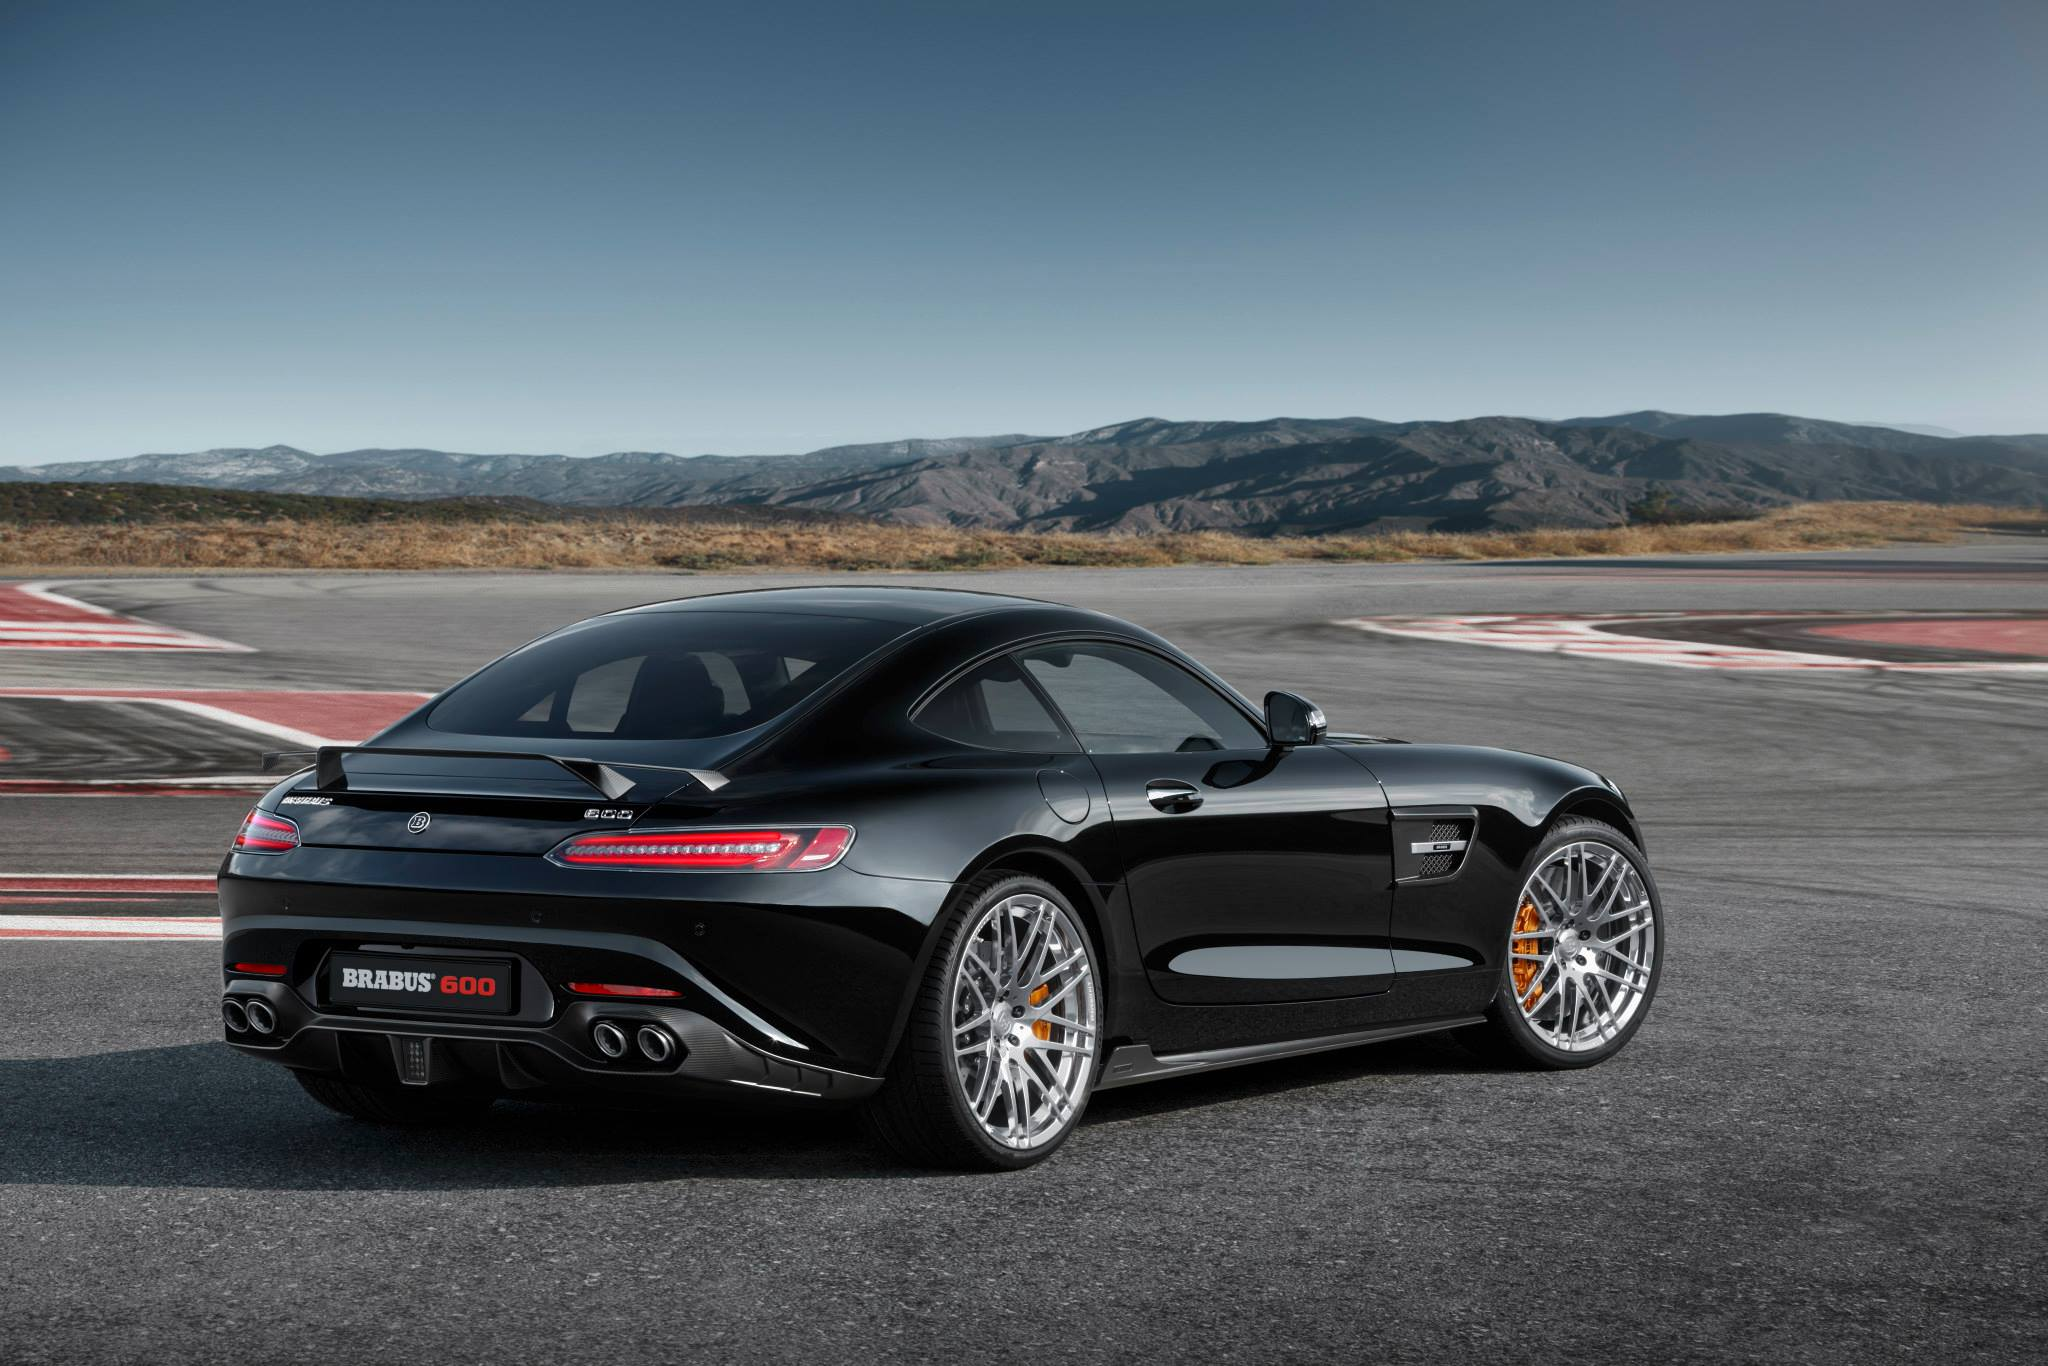 Brabus Reveals Tuned Mercedes Amg Gt S With 600 Hp Ahead Of Frankfurt